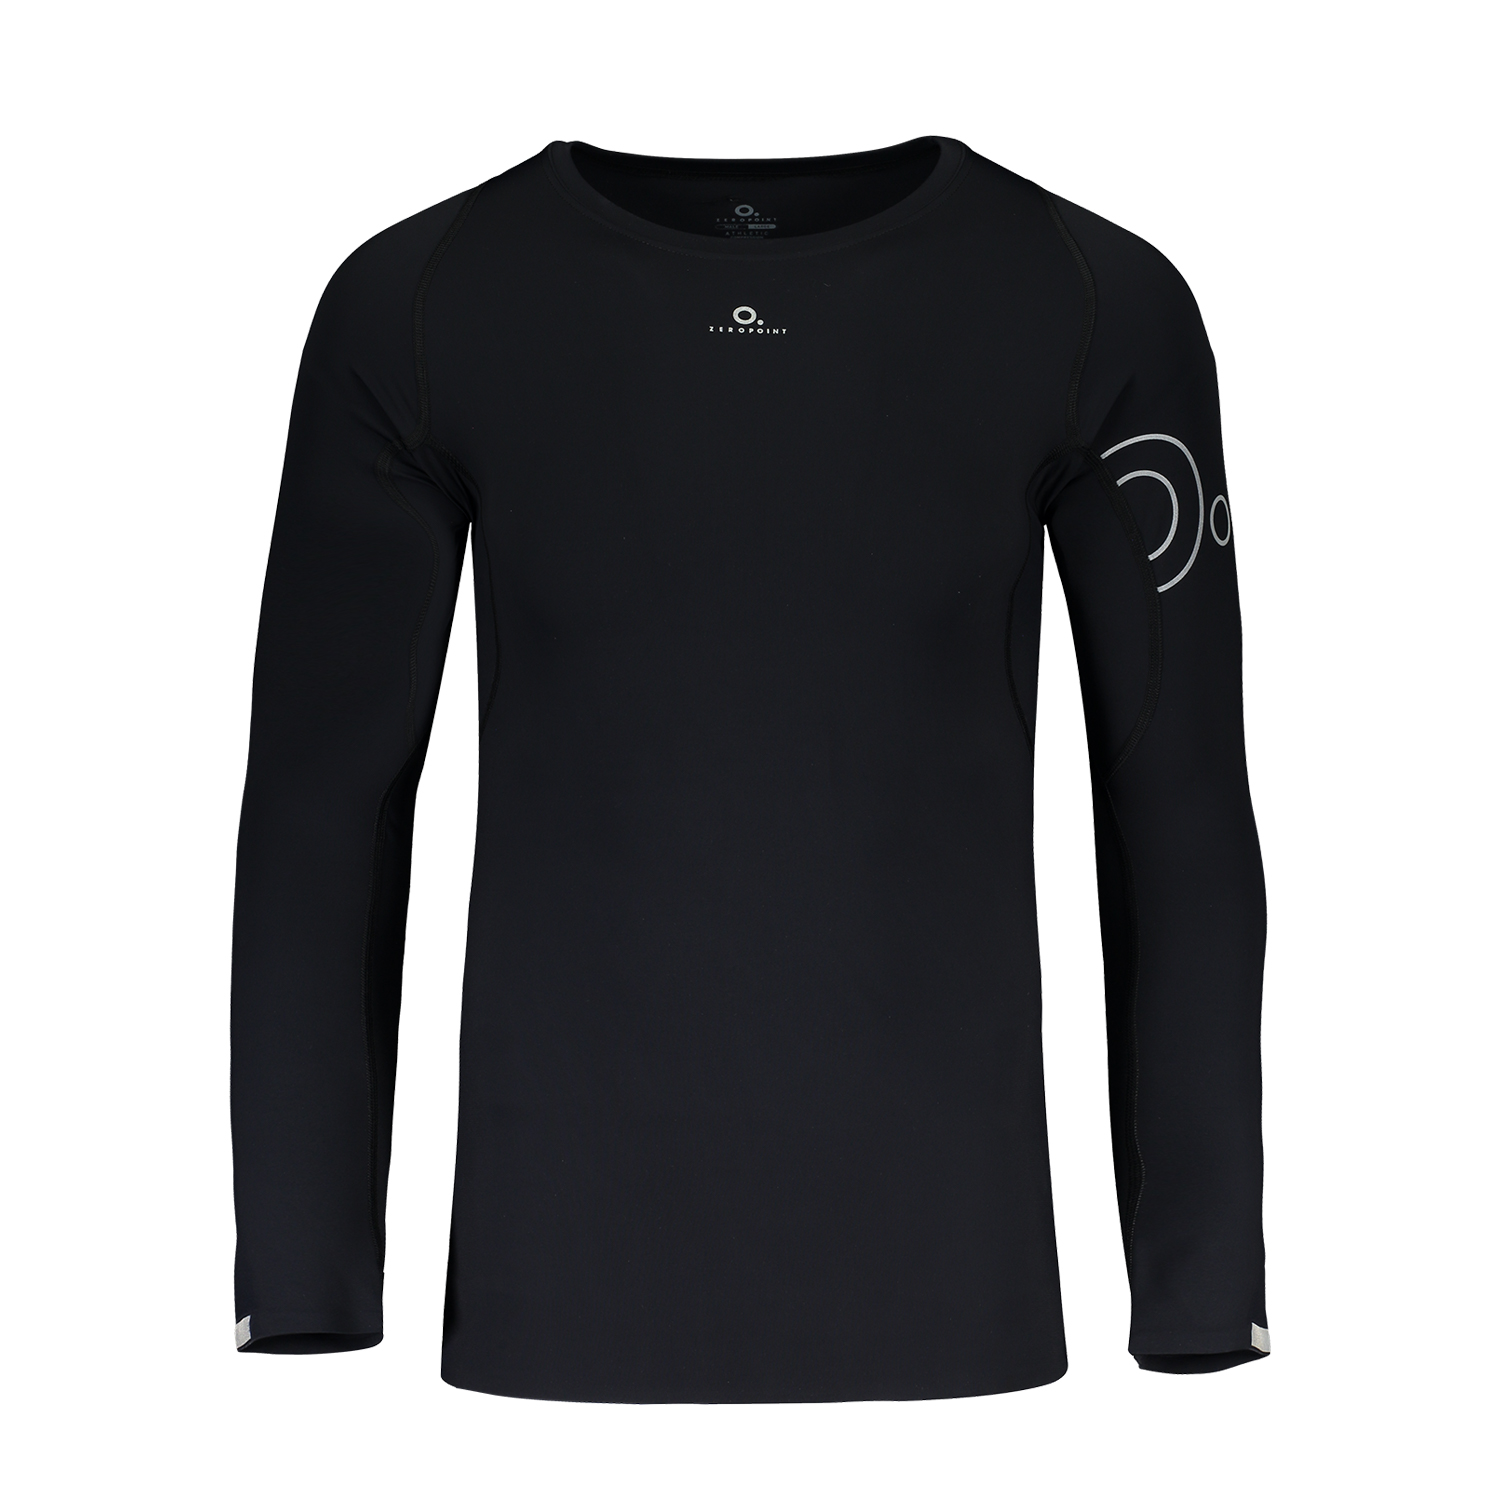 2235c7f345 Mens light thermal LS_Front. Mens light thermal LS_Back. Home / Men's  compression / Tops / Thermal Compression Long Sleeve Top M